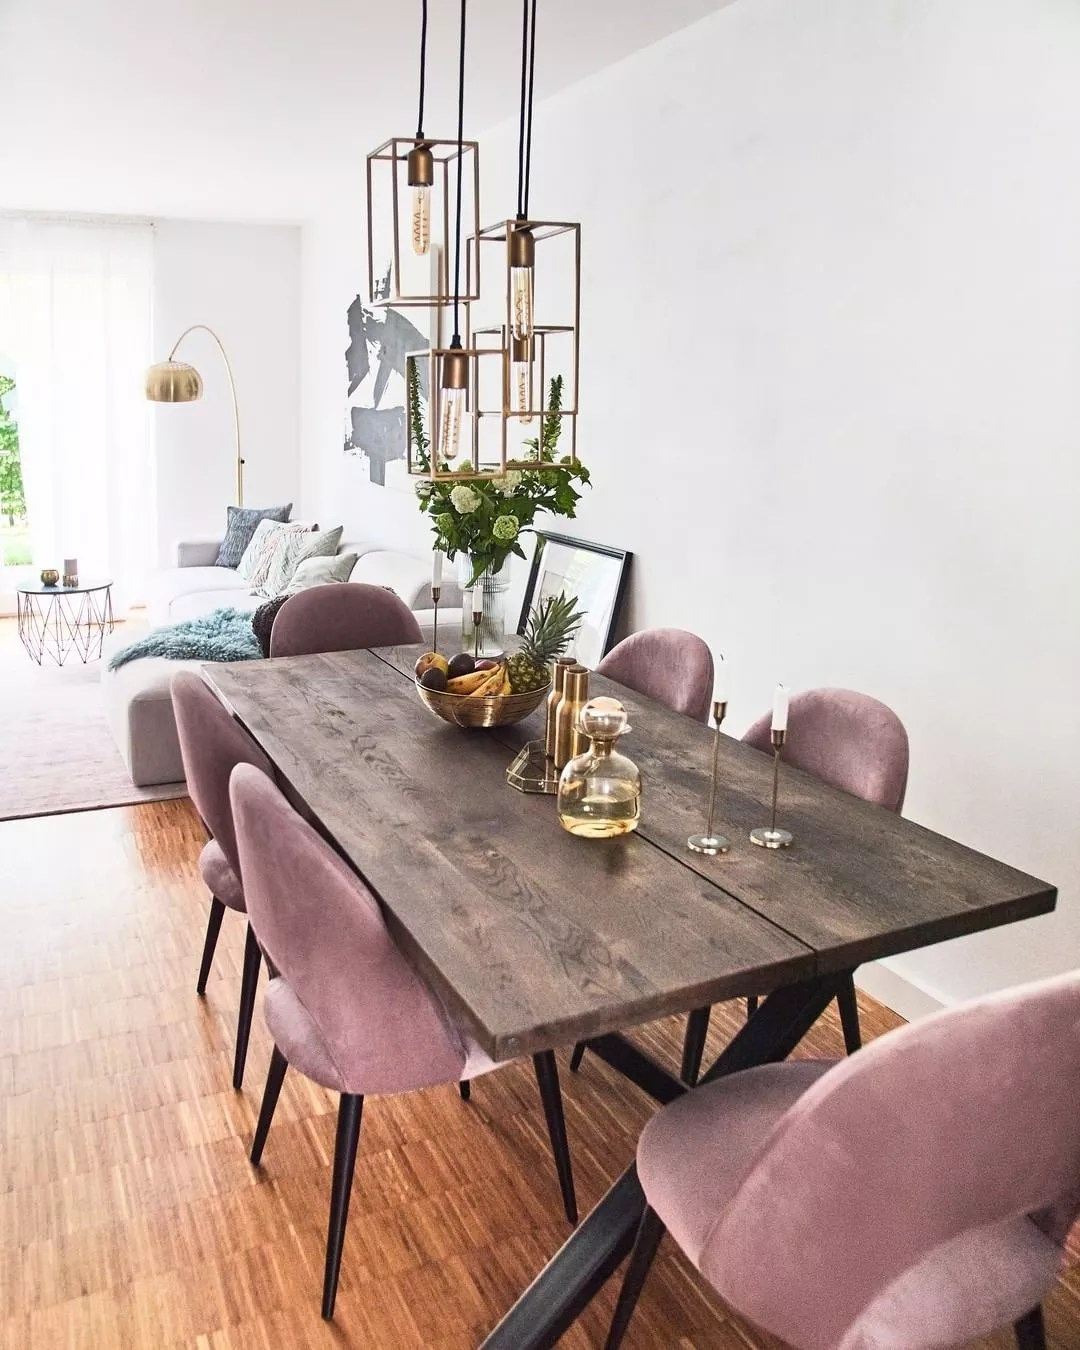 Modern Dining Room Connected to Living Room. Photo by Instagram user @westwing_es